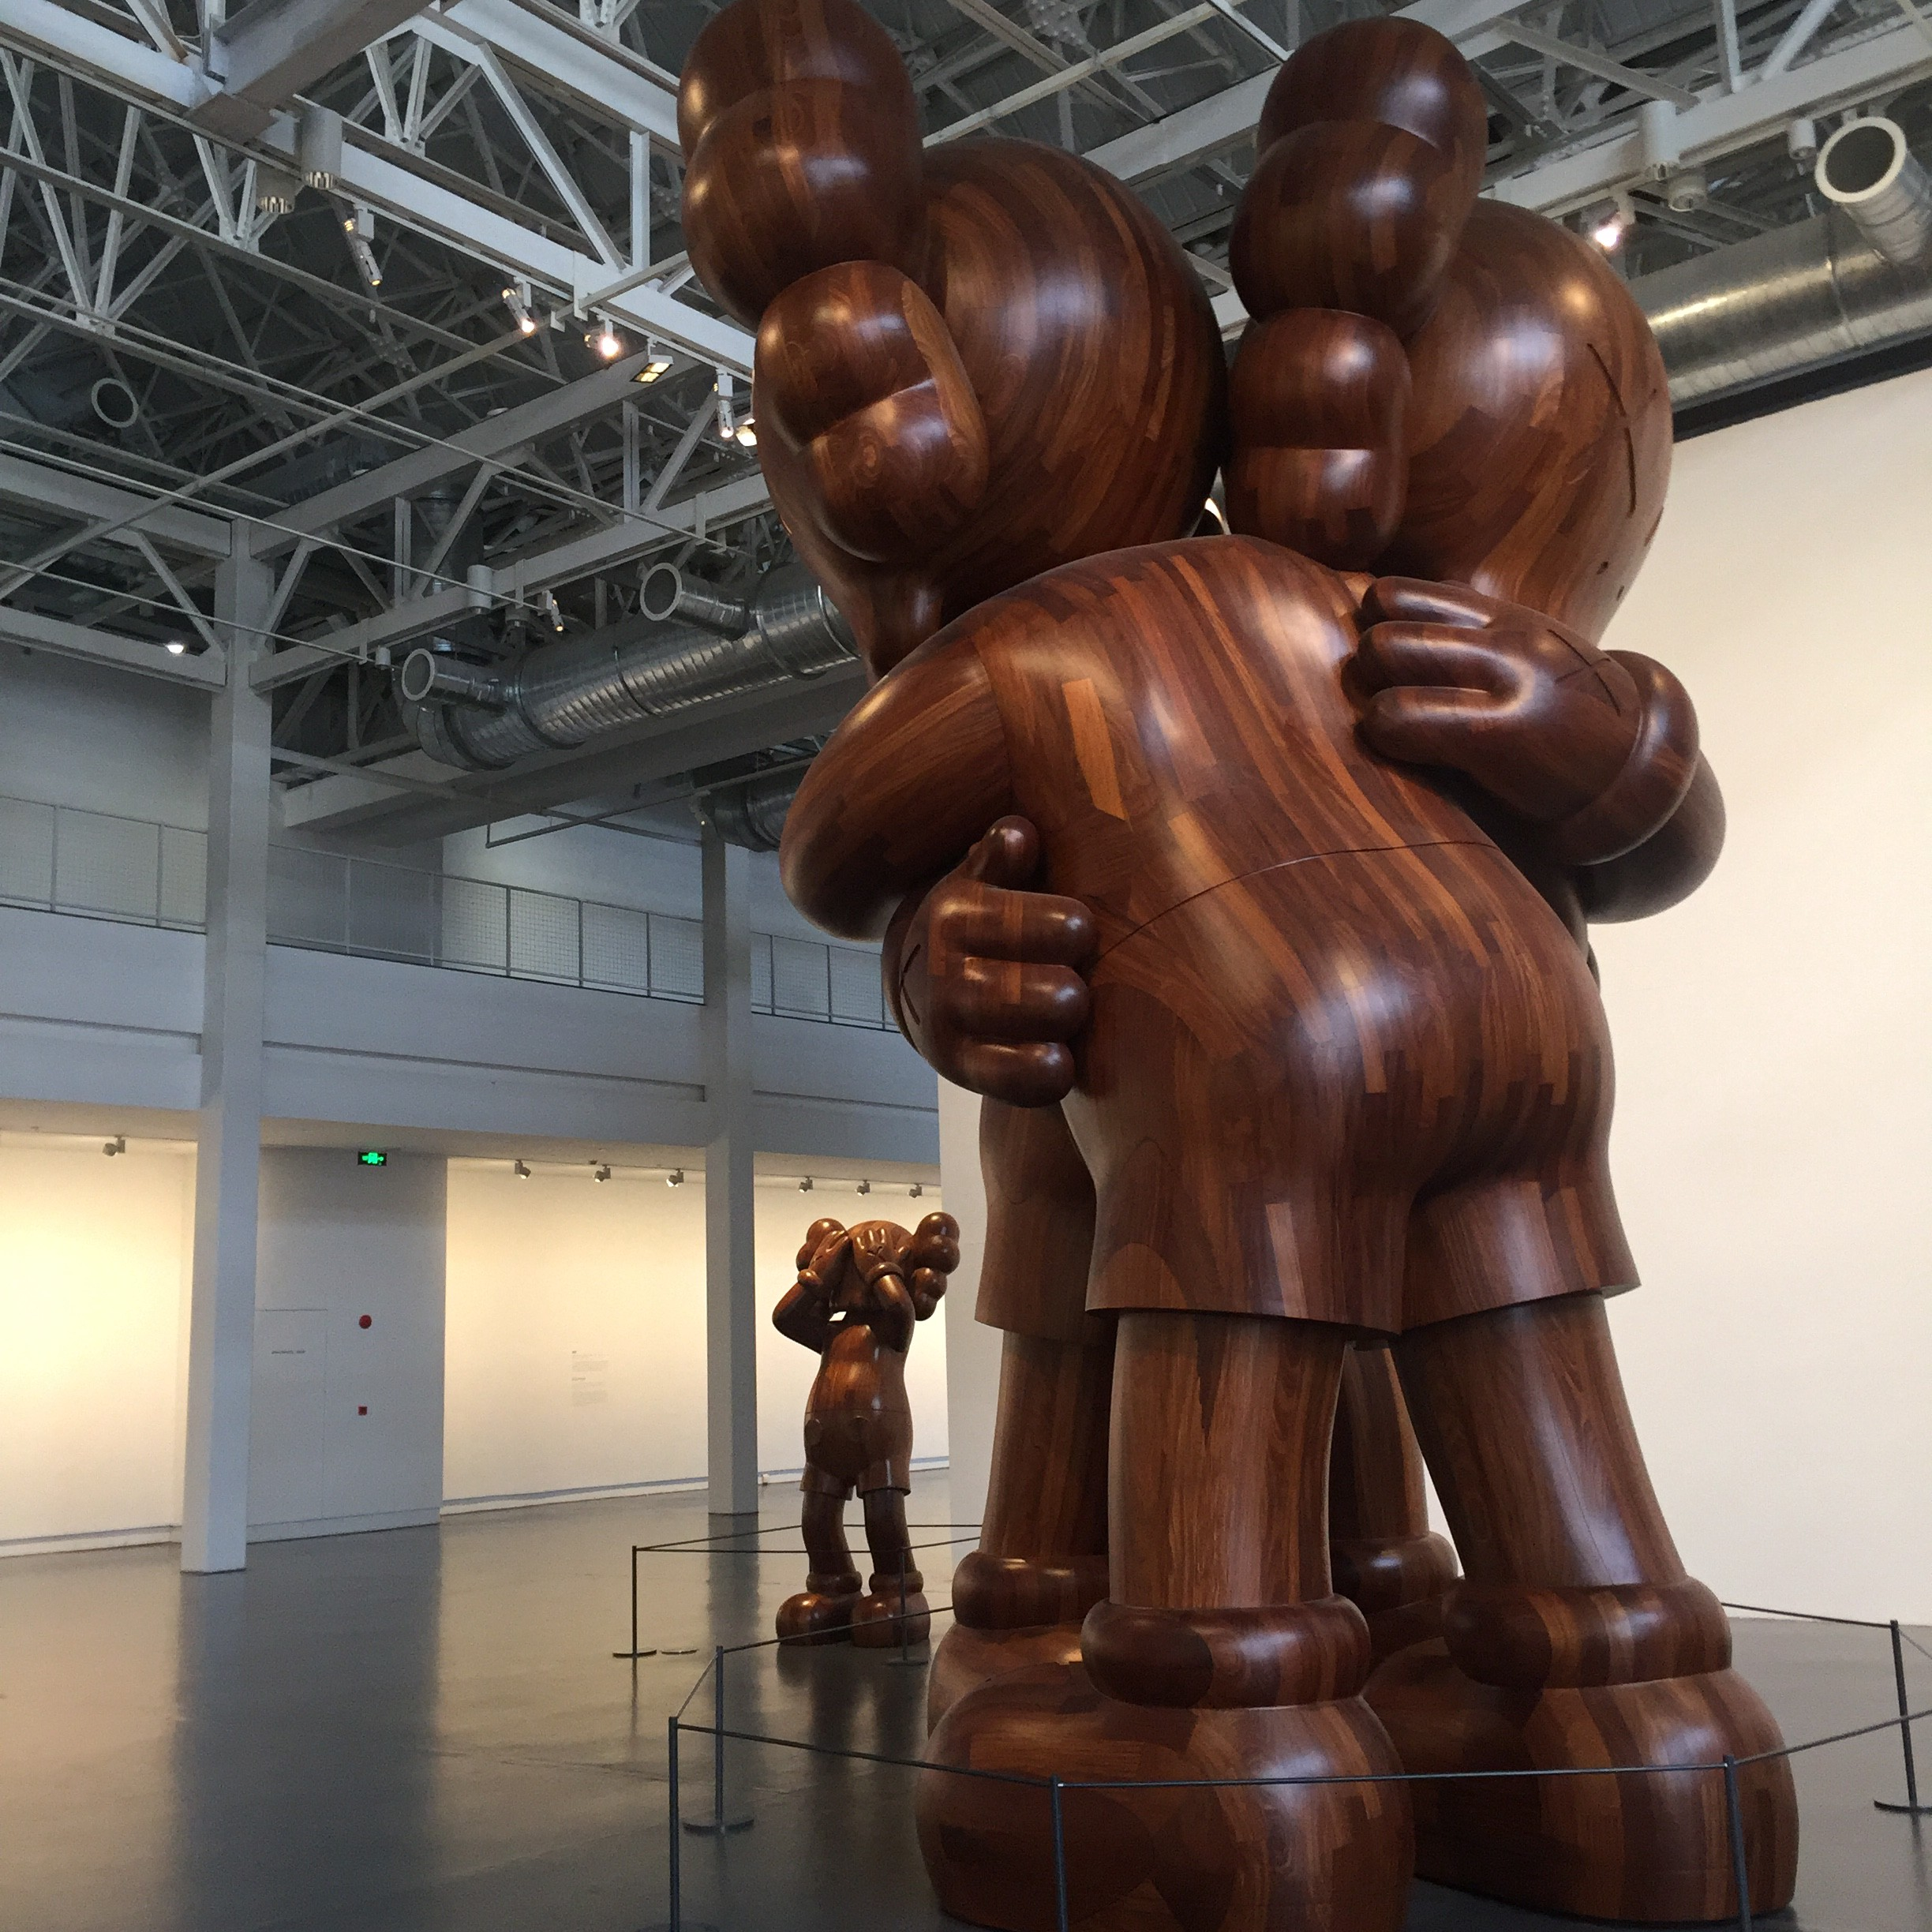 10 Things You Probably Didn't Know About KAWS kaws 10 Facts About Kaws That You Didn't Know (But Definitely Should) 10 Things You Probably Didnt Know About KAWS 1